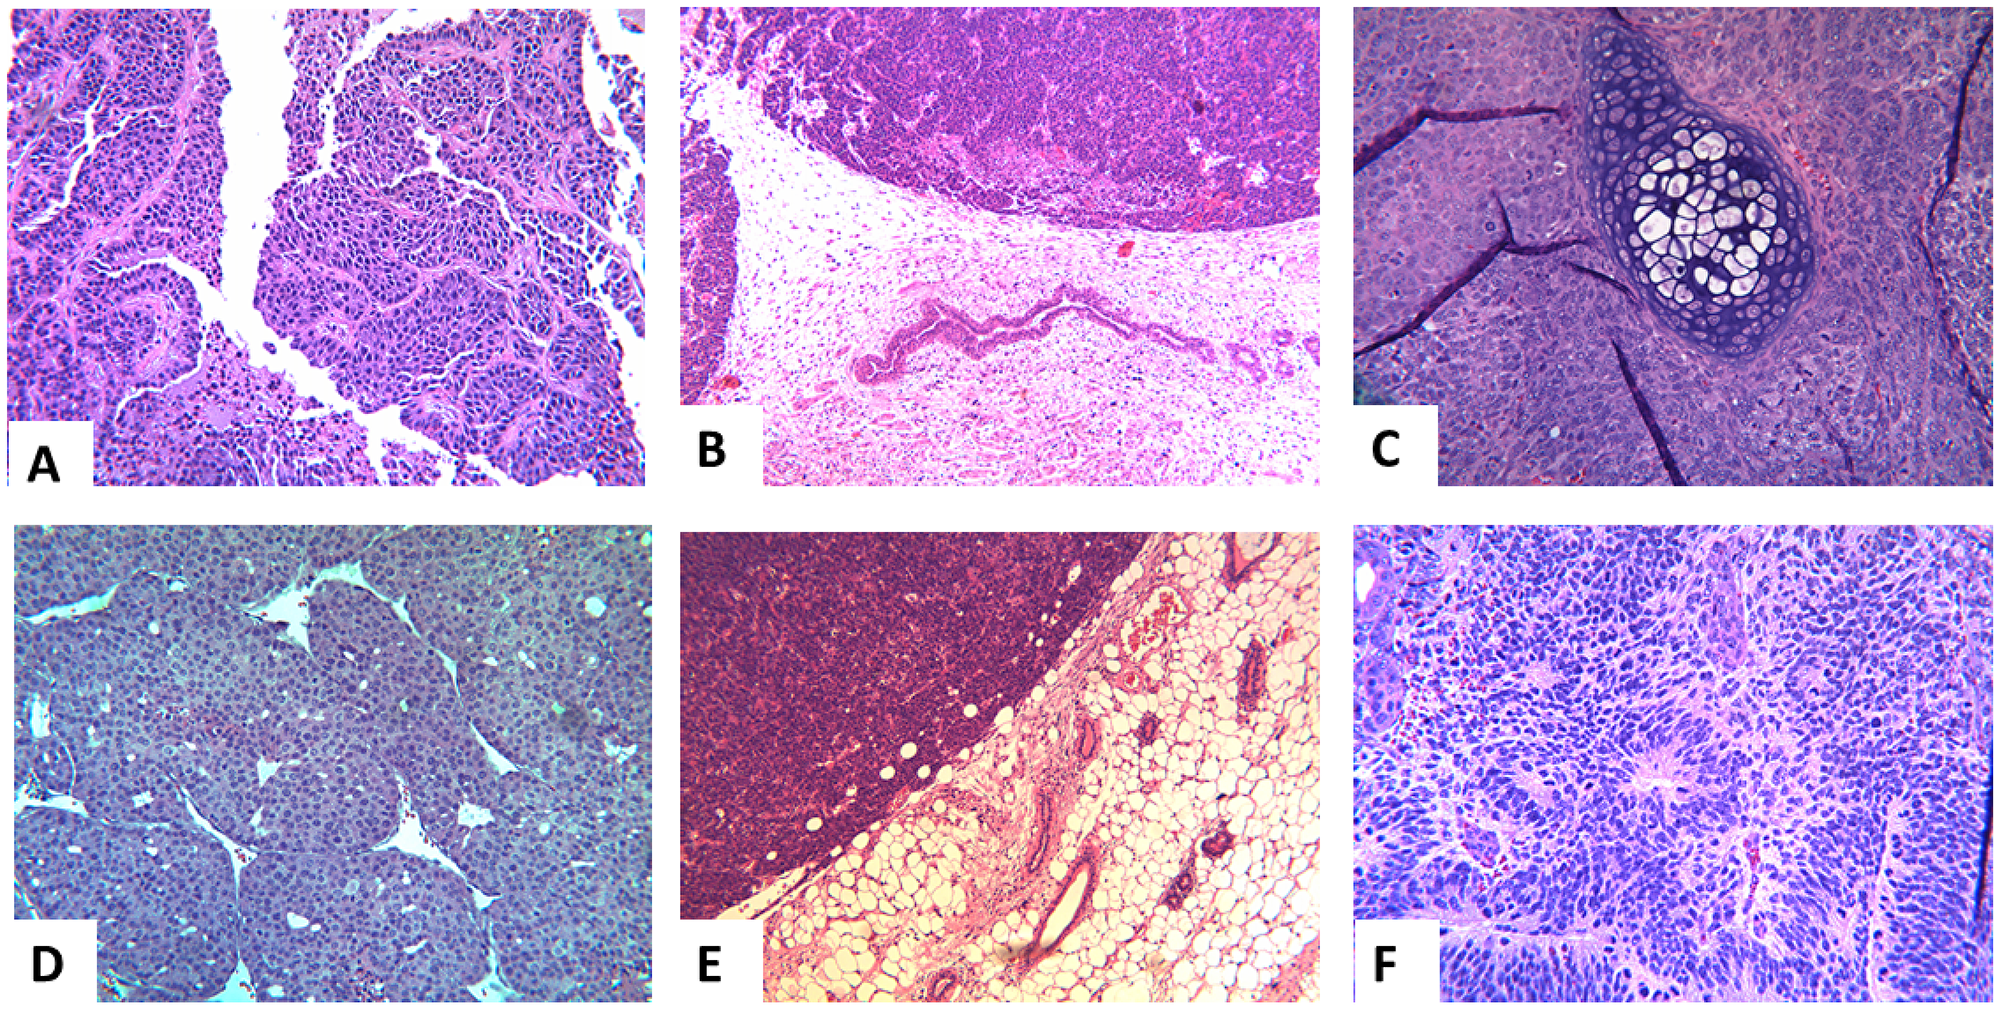 Representative histology of the extirpated tumors in the different groups.